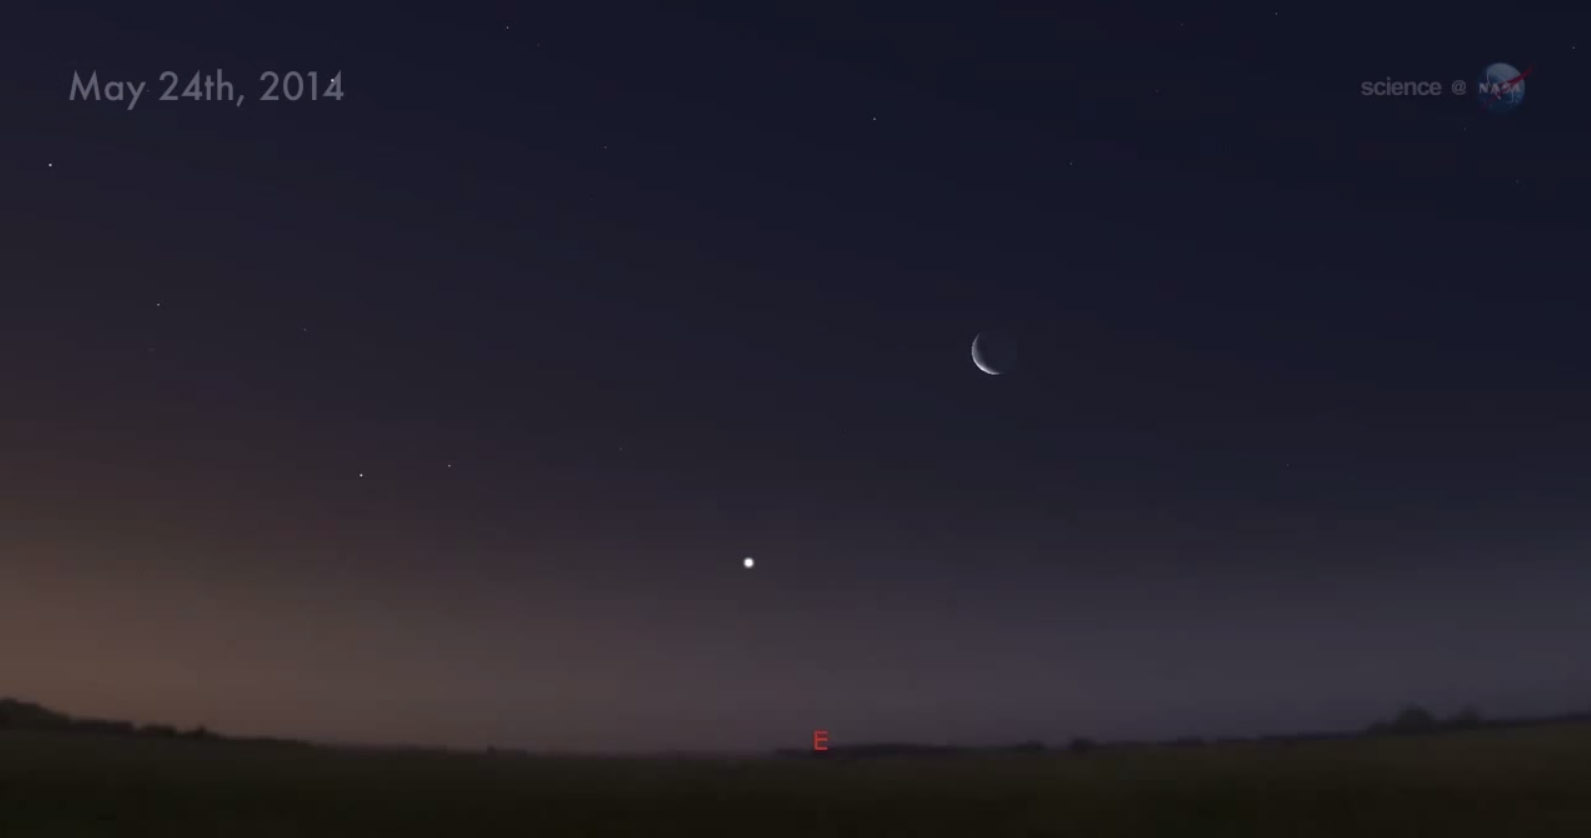 Venus and the Moon: May 24, 2014